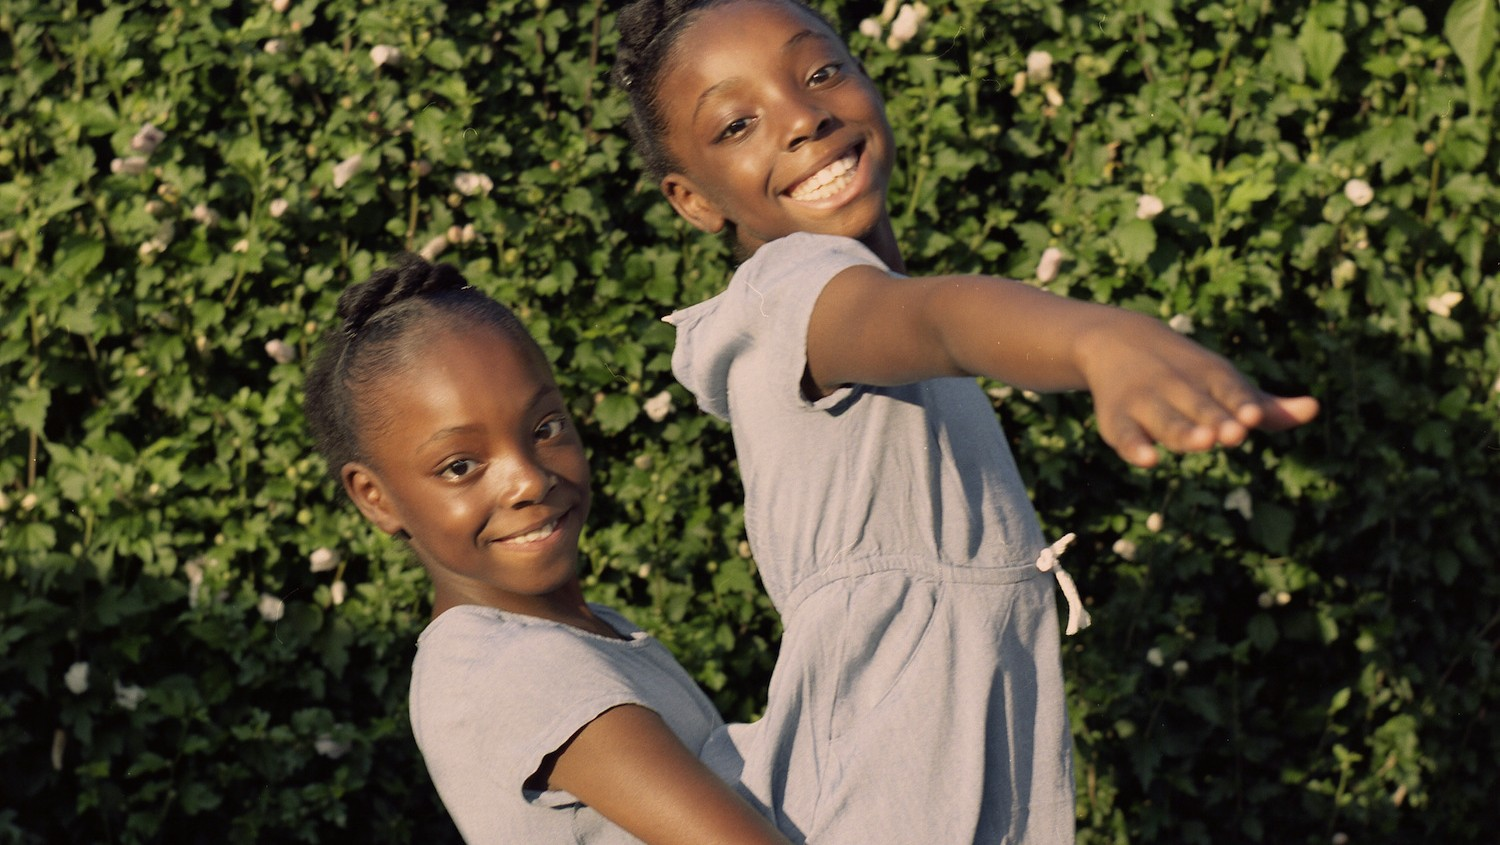 The Enduring Friendship of Black Twin Sisters, in Photos